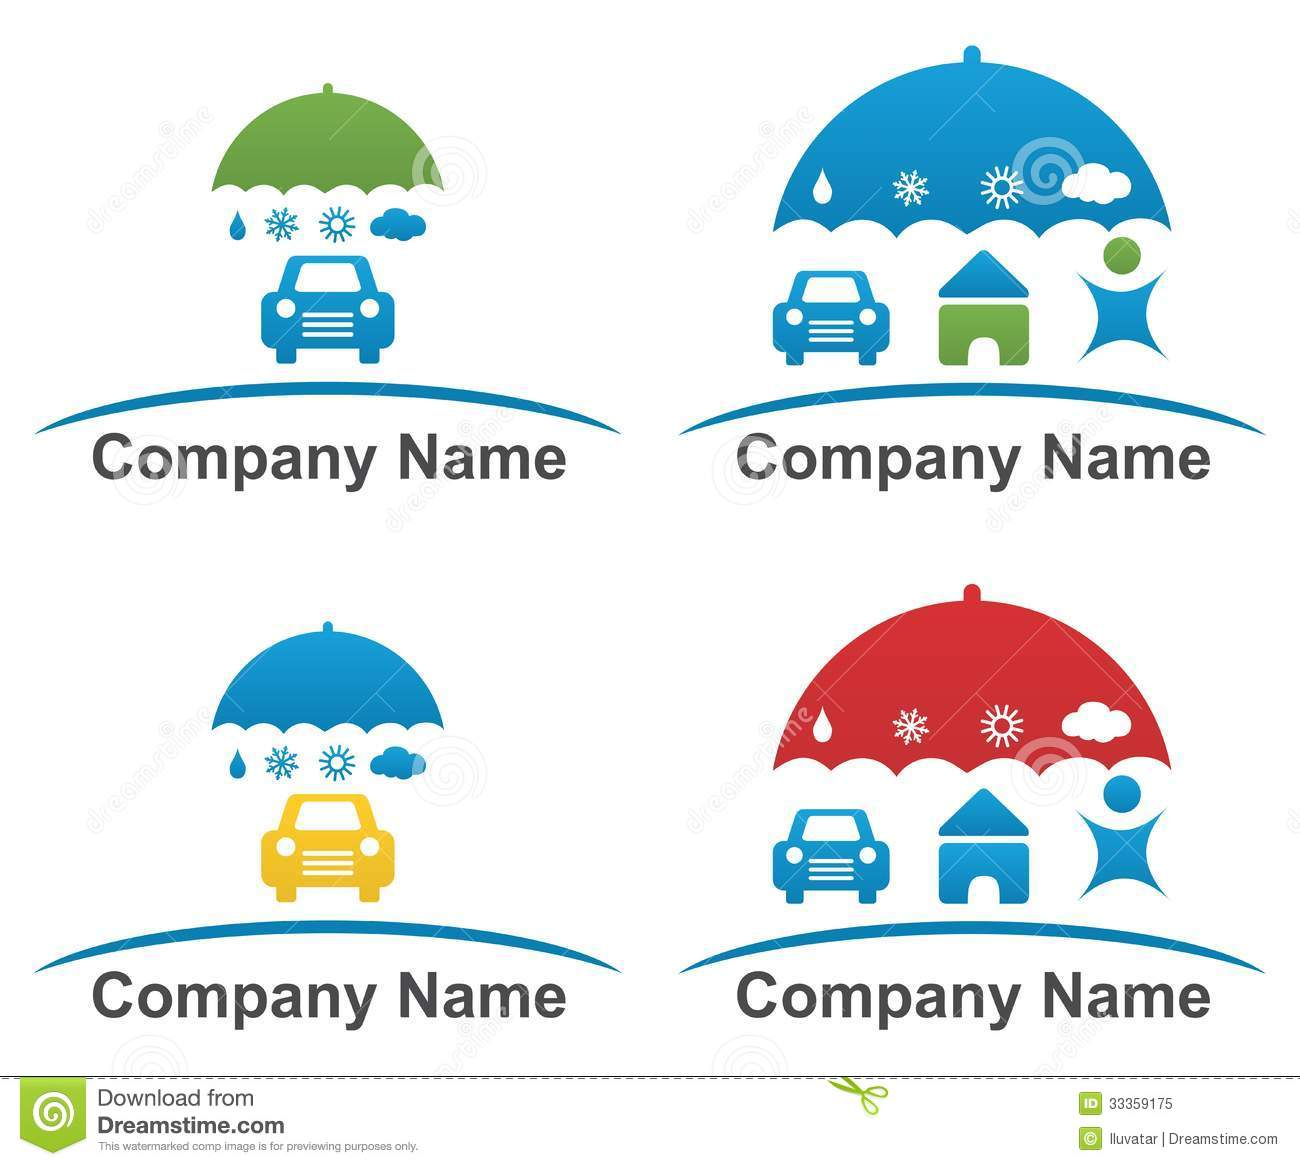 Company logo design royalty free stock photo image 33359175 for Design company